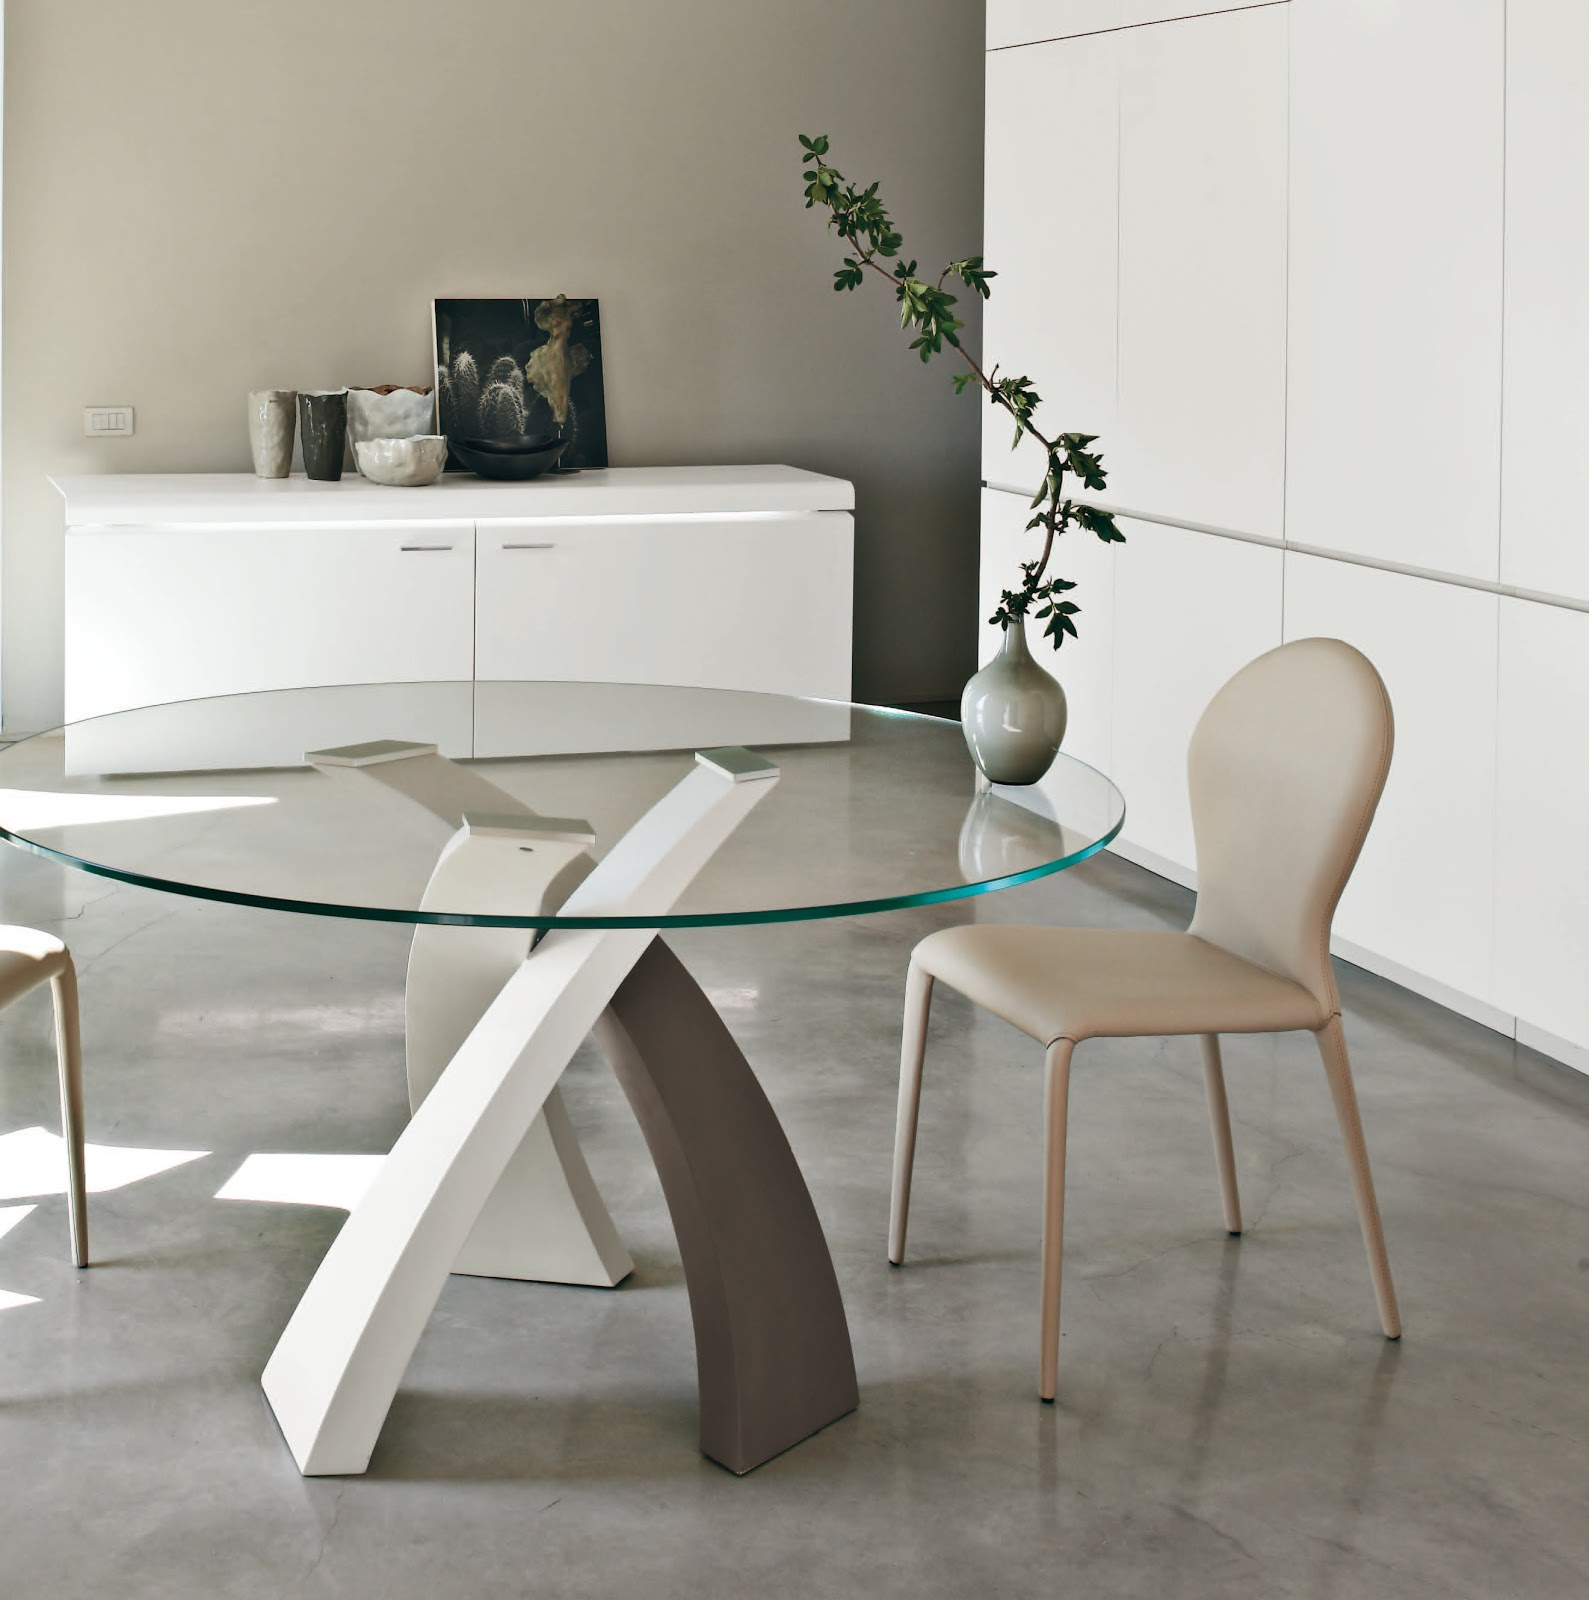 Inspiration mobilier design table ronde design - Table moderne en verre ...